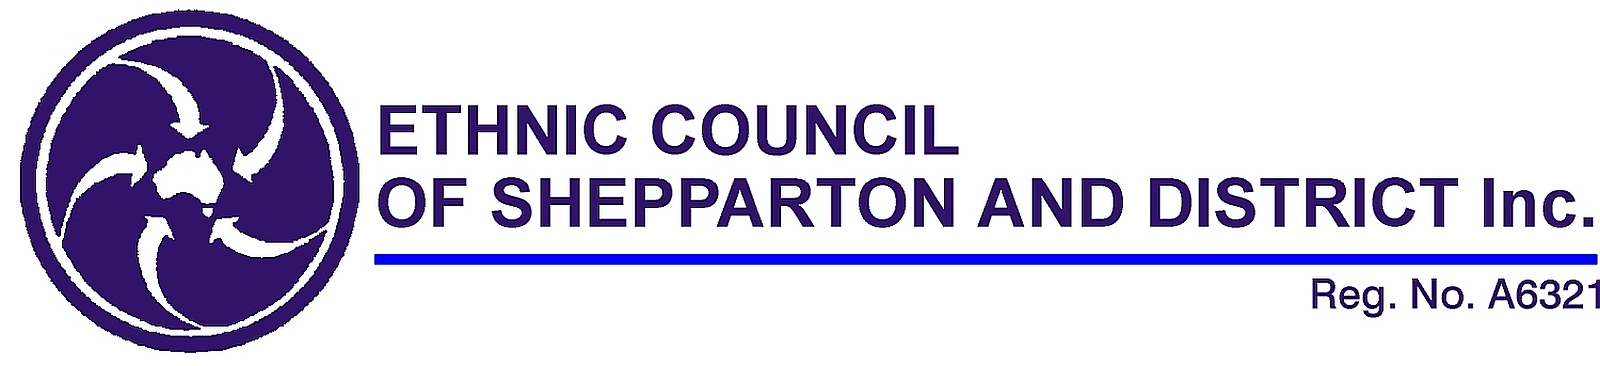 Ethnic Council of Shepparton and District